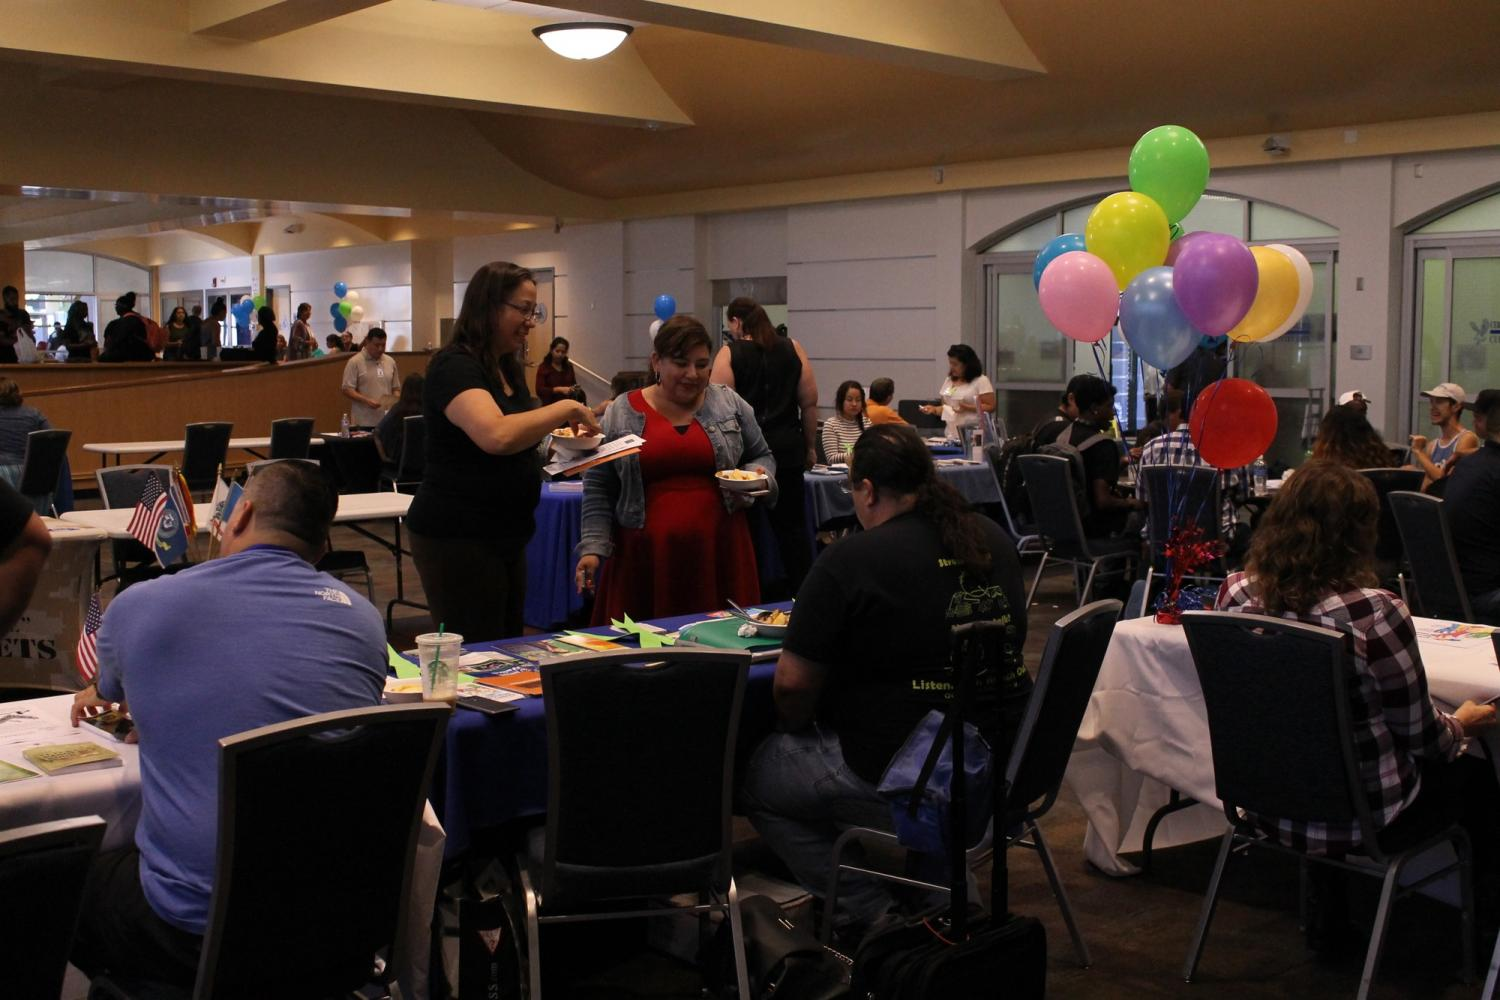 Students were collecting information from the holistic event. Resources were made available to those in the LGBTQ+ community, undocumented students, victims of domestic violence, those addicted to substances and those with mental health issues. Photo credit: Jose Flores